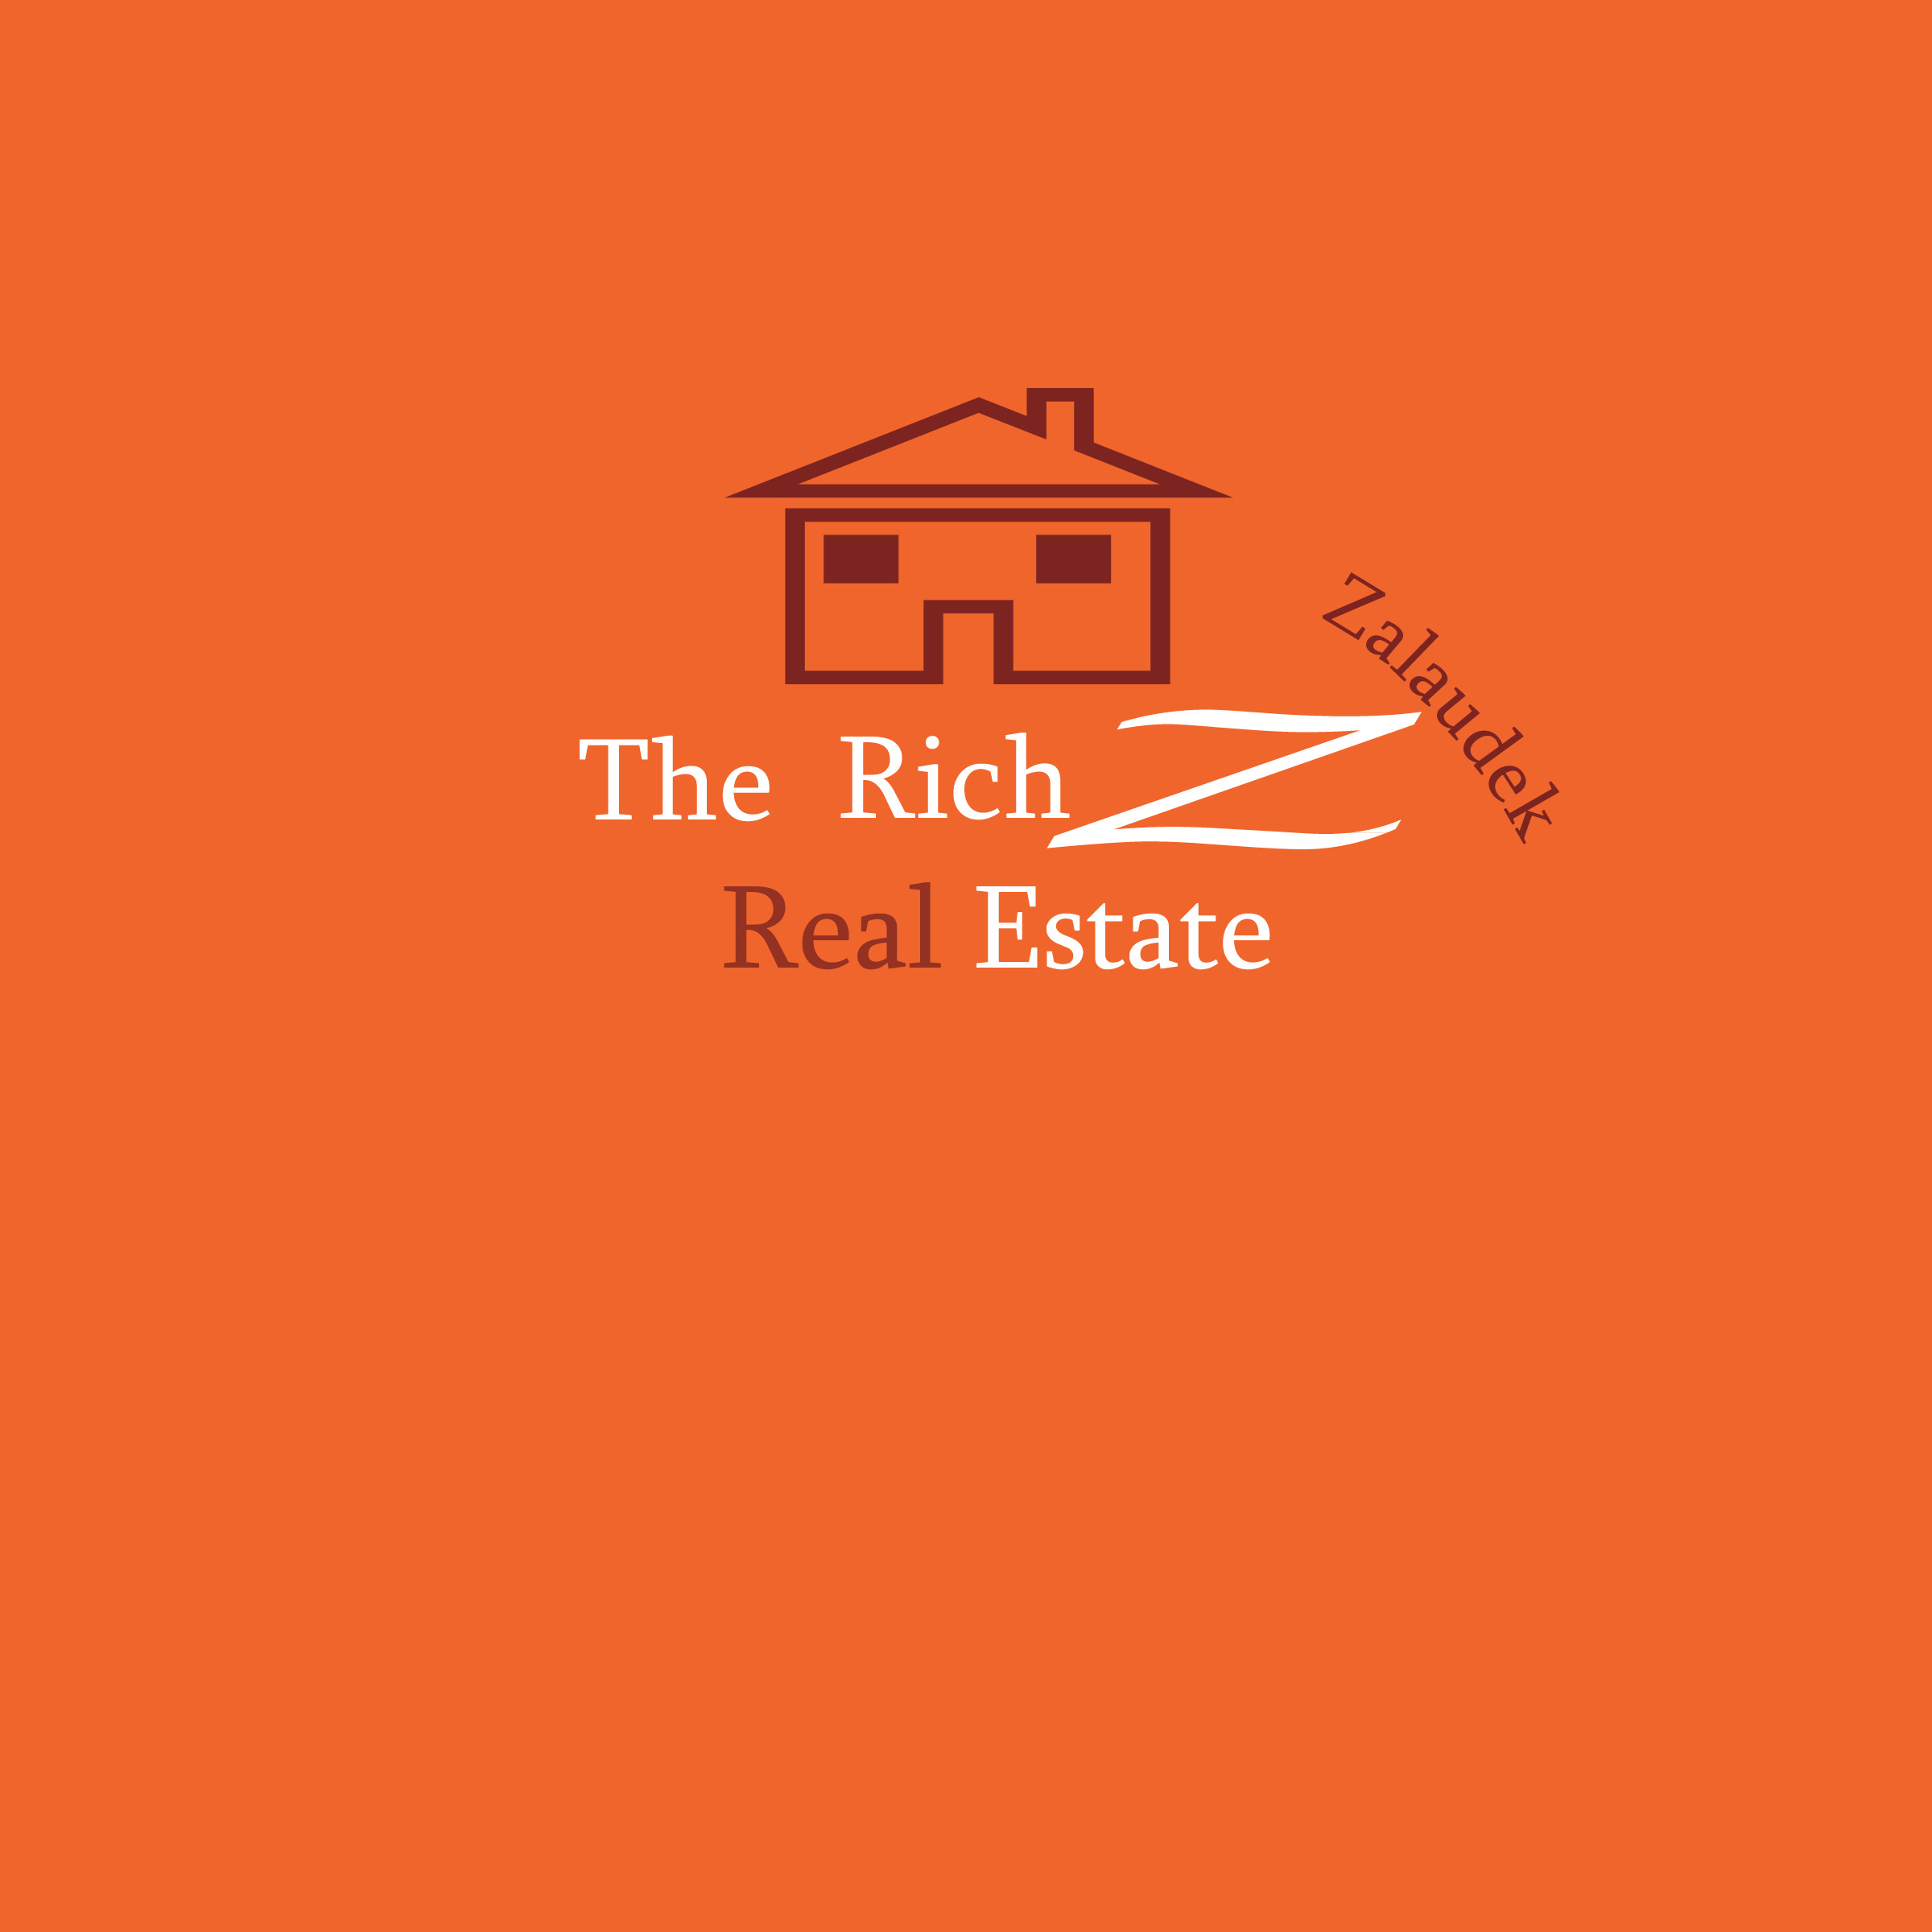 Logo Design by Laila Tariq - Entry No. 13 in the Logo Design Contest The Rich Z. Real Estate Group Logo Design.